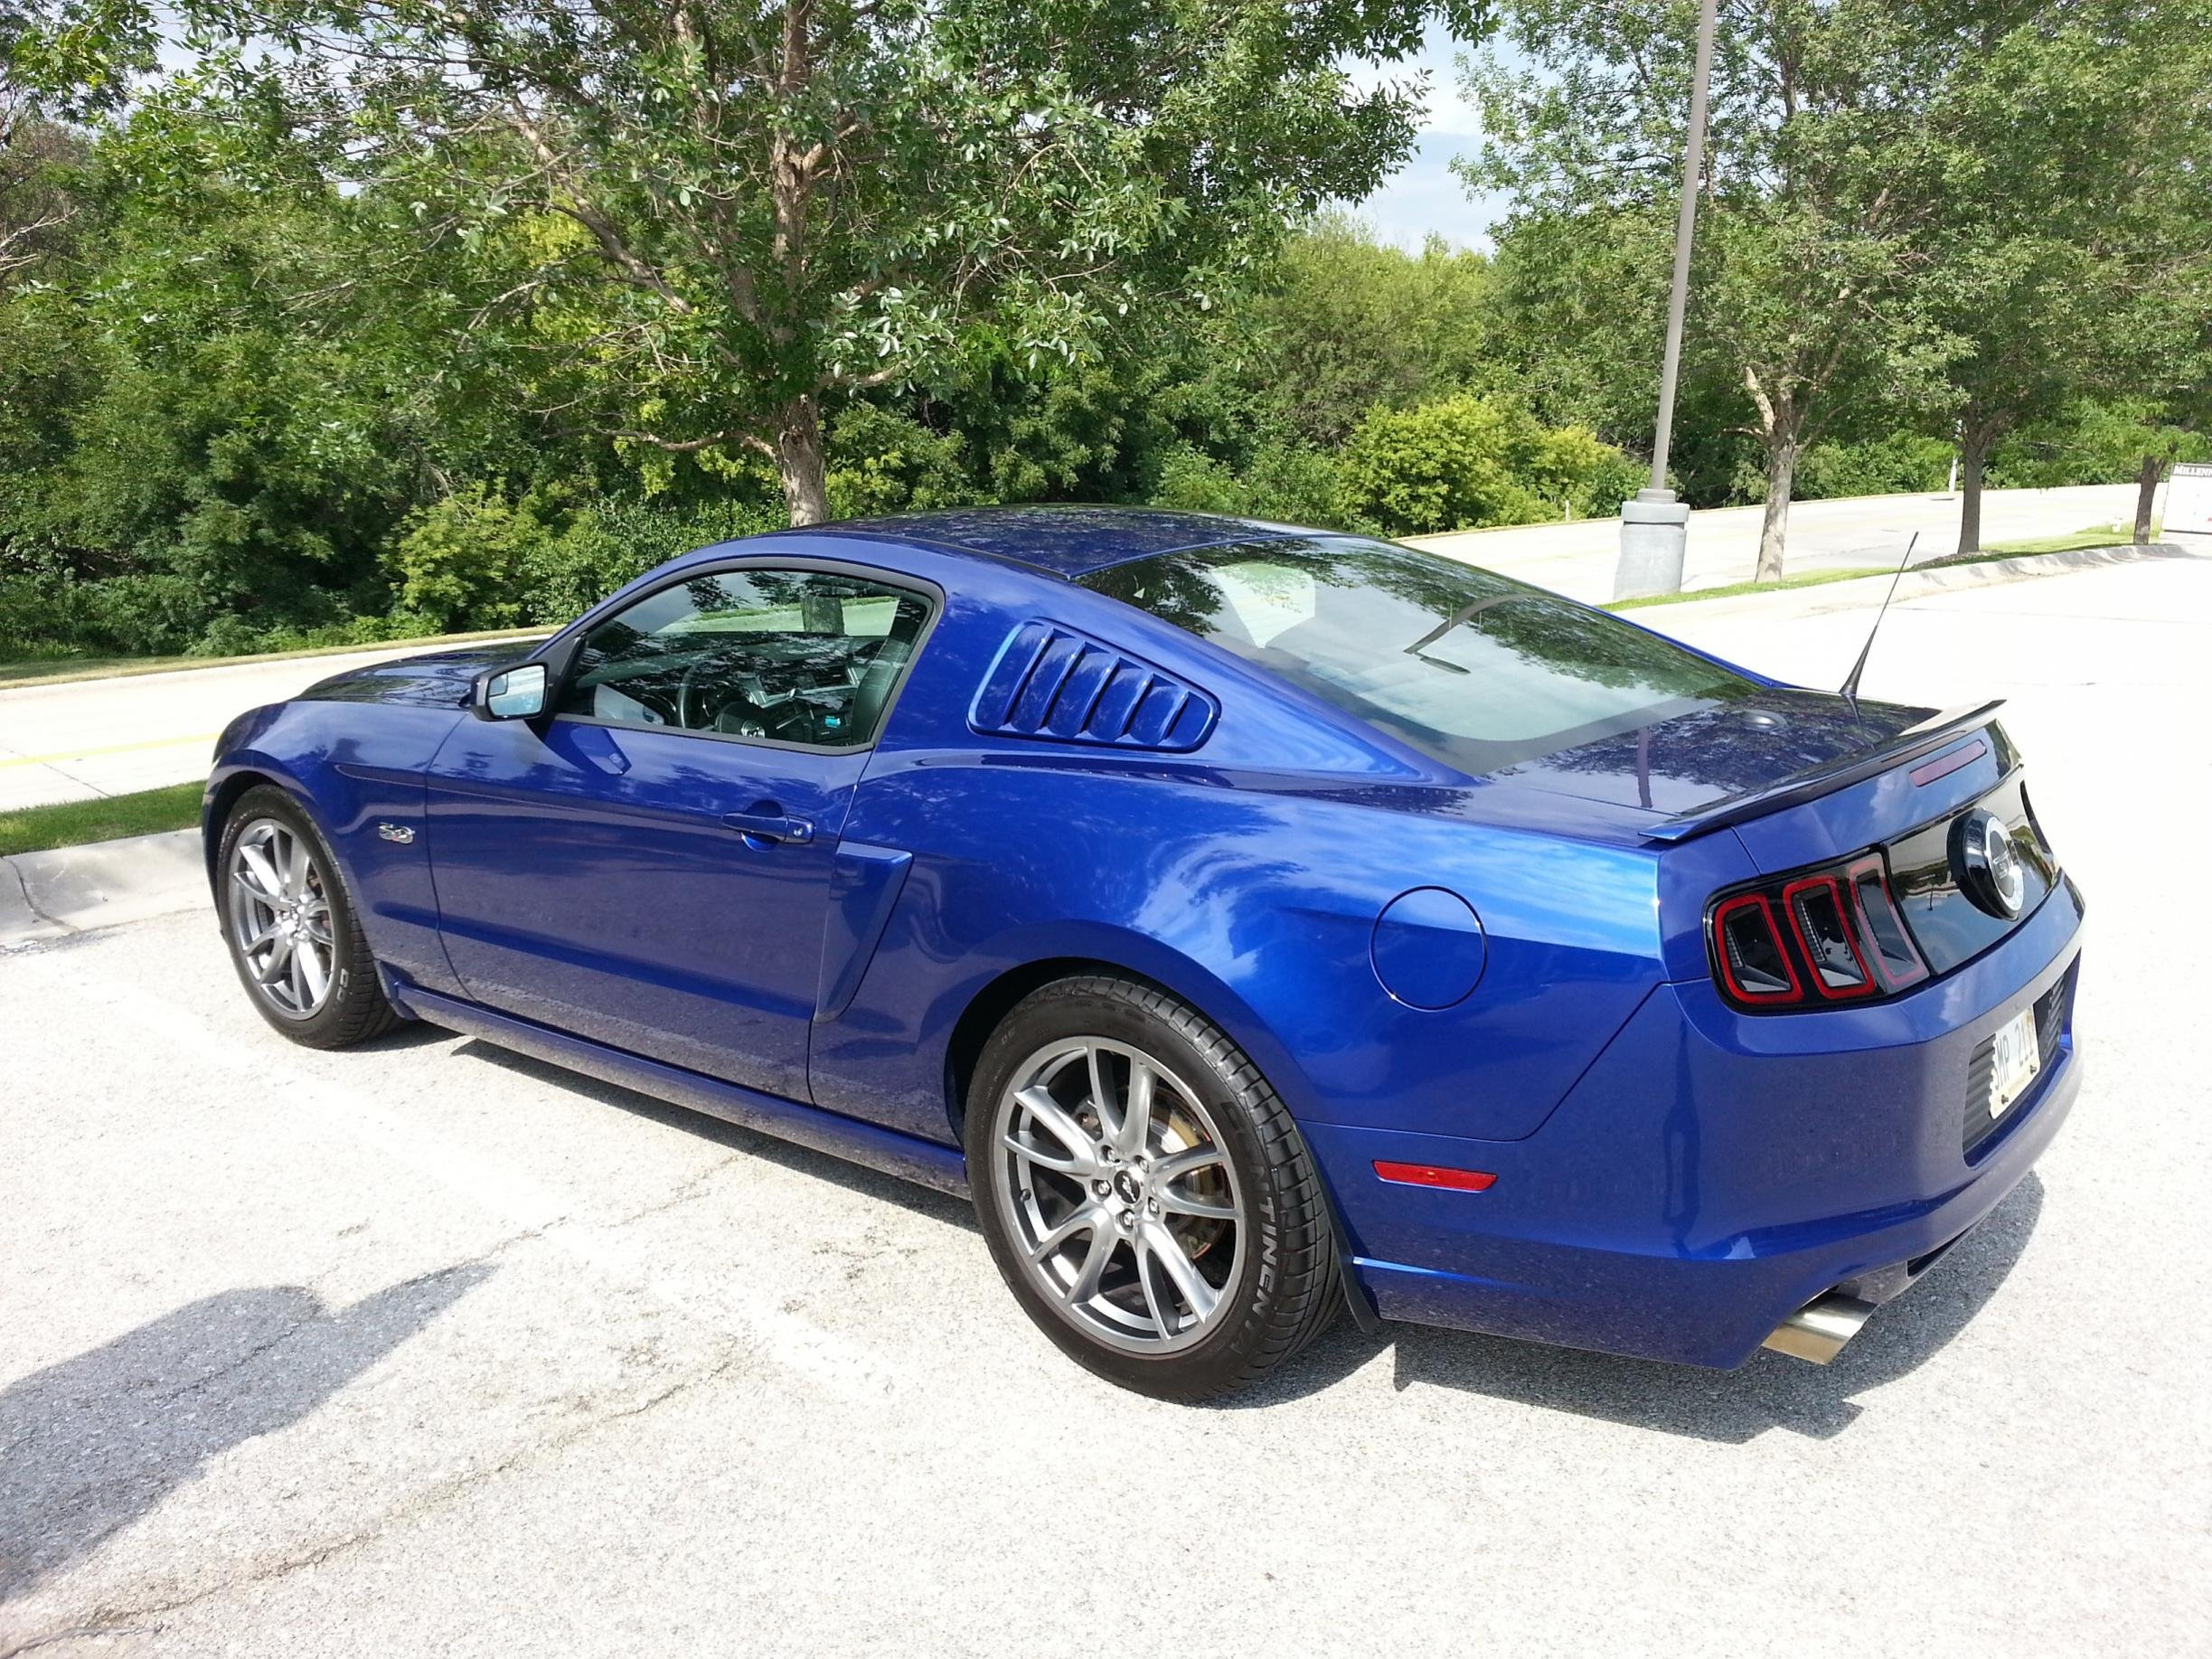 2014 Mustang Gt Track Pack >> 275/40/19 Tires on GT Track Package - Page 2 - Ford Mustang Forum